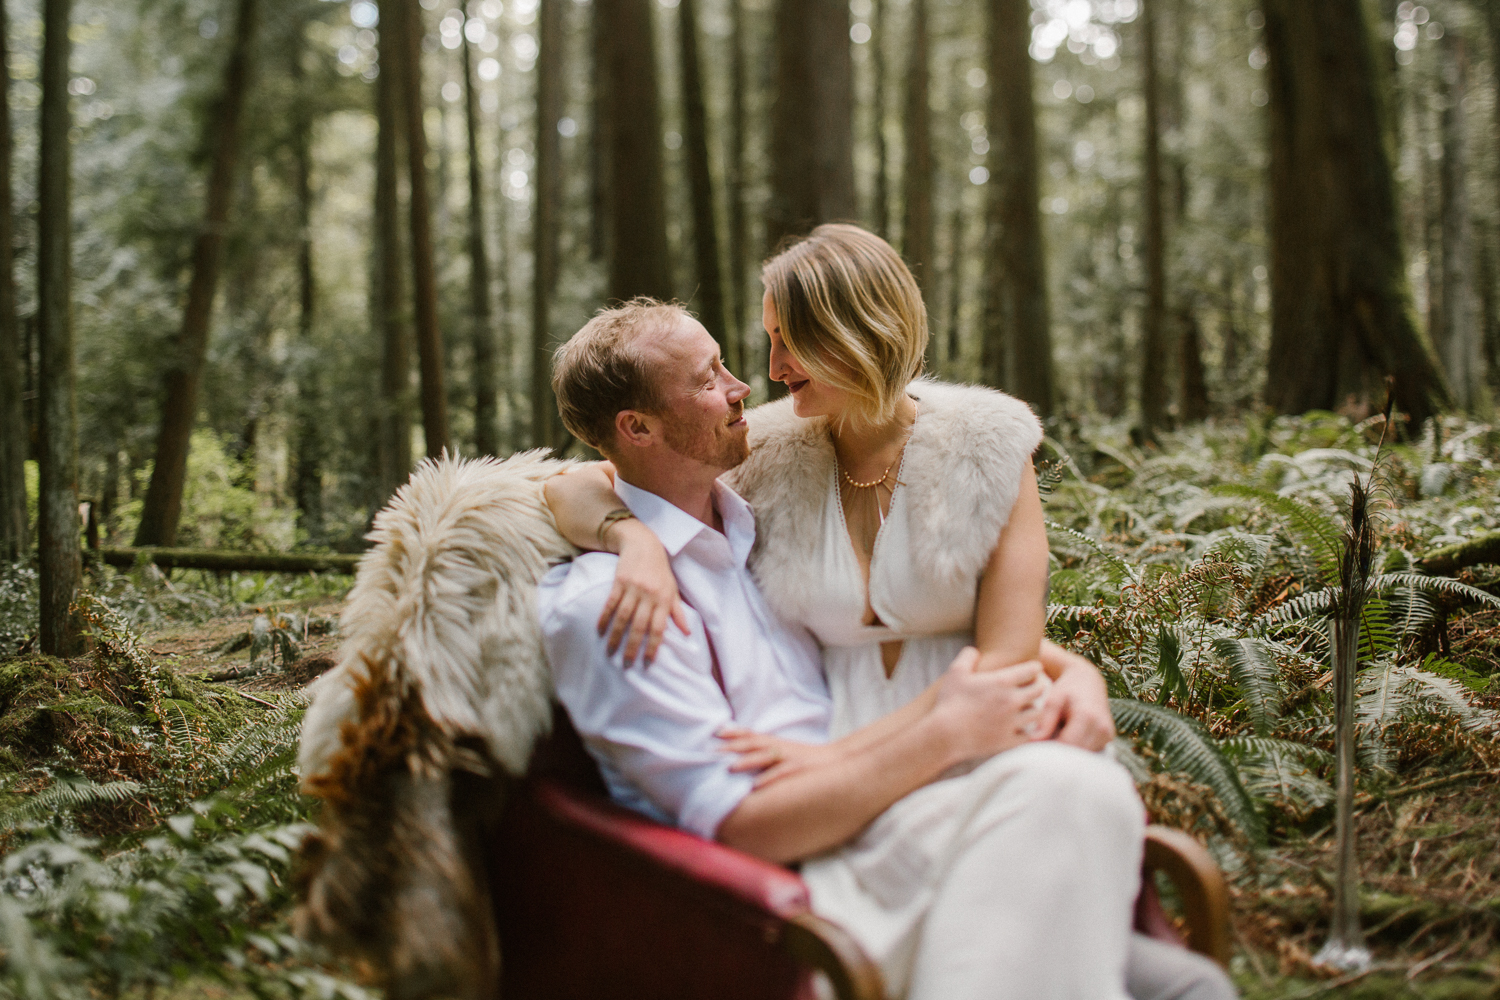 Couple embracing in the woods Engagement Fairytale Victoria